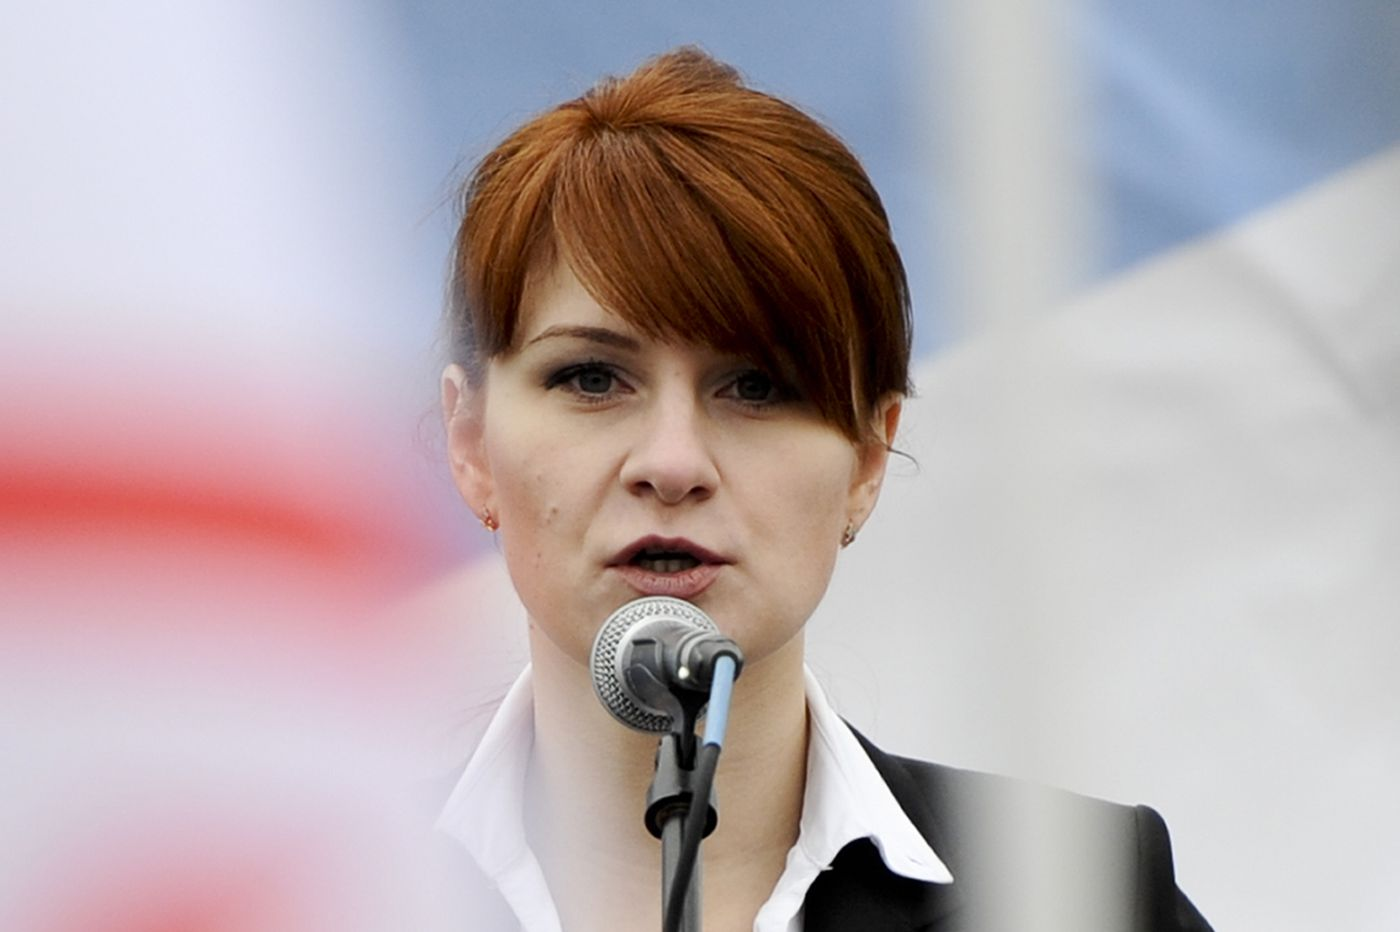 Russian agent Butina shouldn't serve any more time in prison, her lawyers say